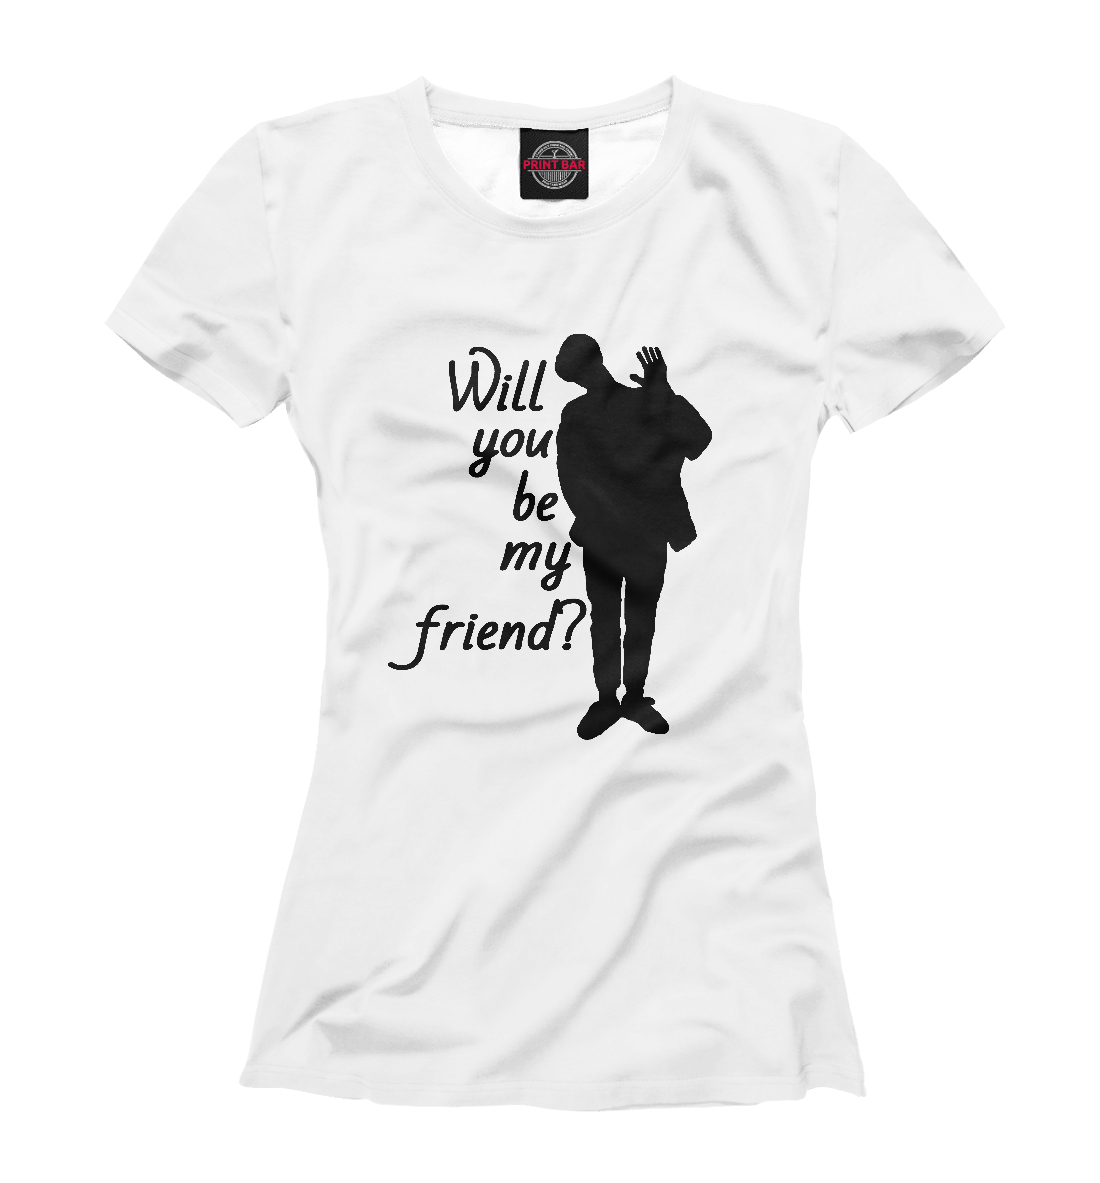 Will you be my friend? be water my friend